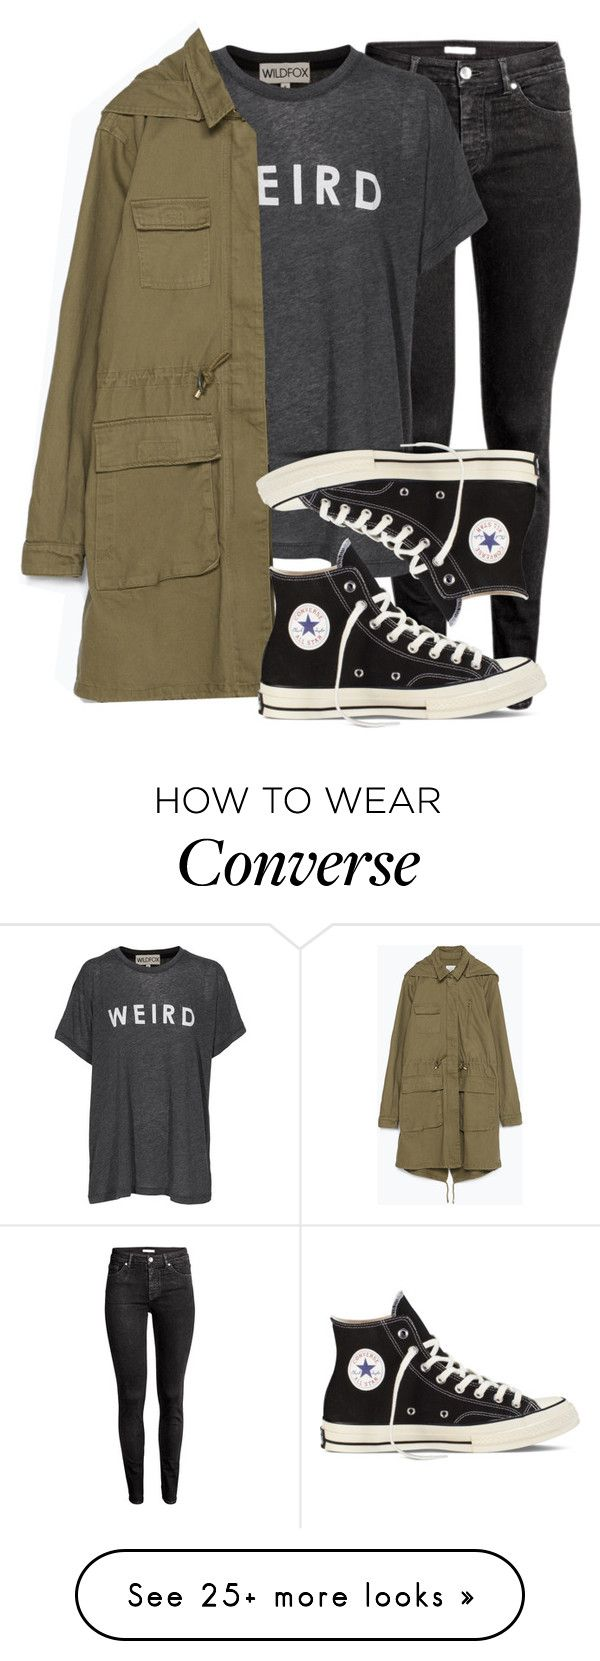 """Untitled #1852"" by feathersandroses on Polyvore featuring Wildfox, Zara and Converse"